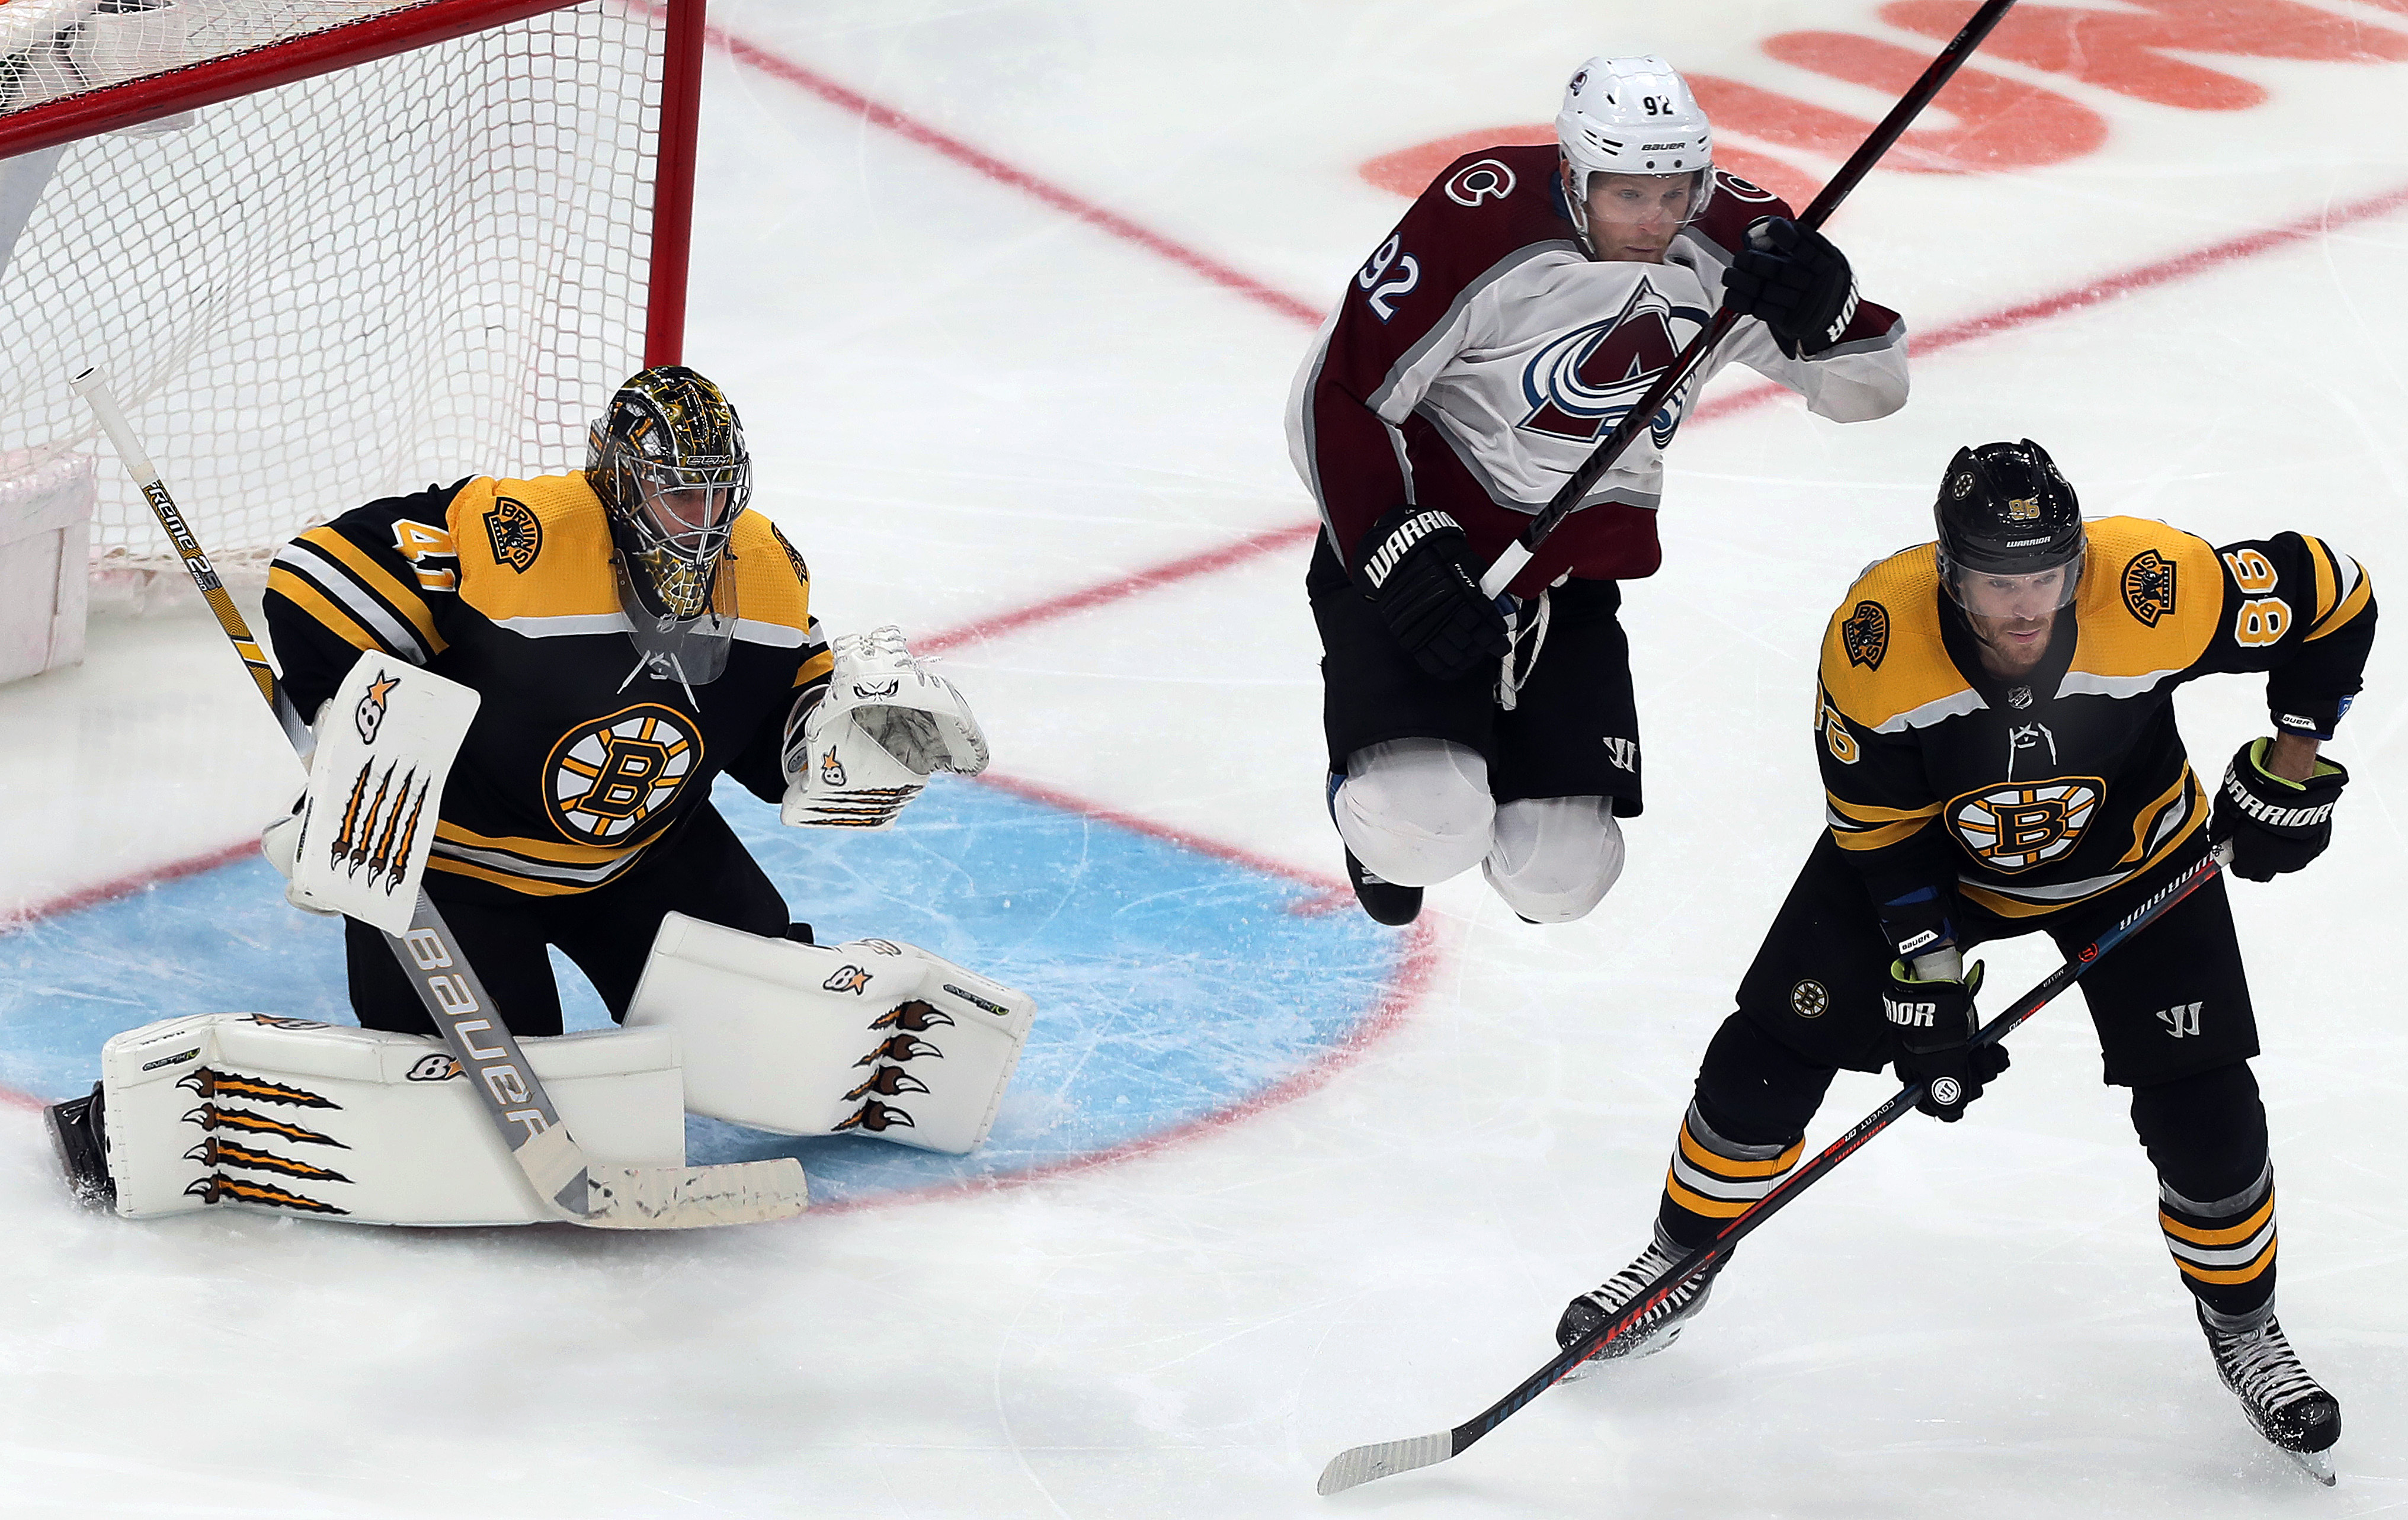 Checking in on the Bruins' Kevan Miller